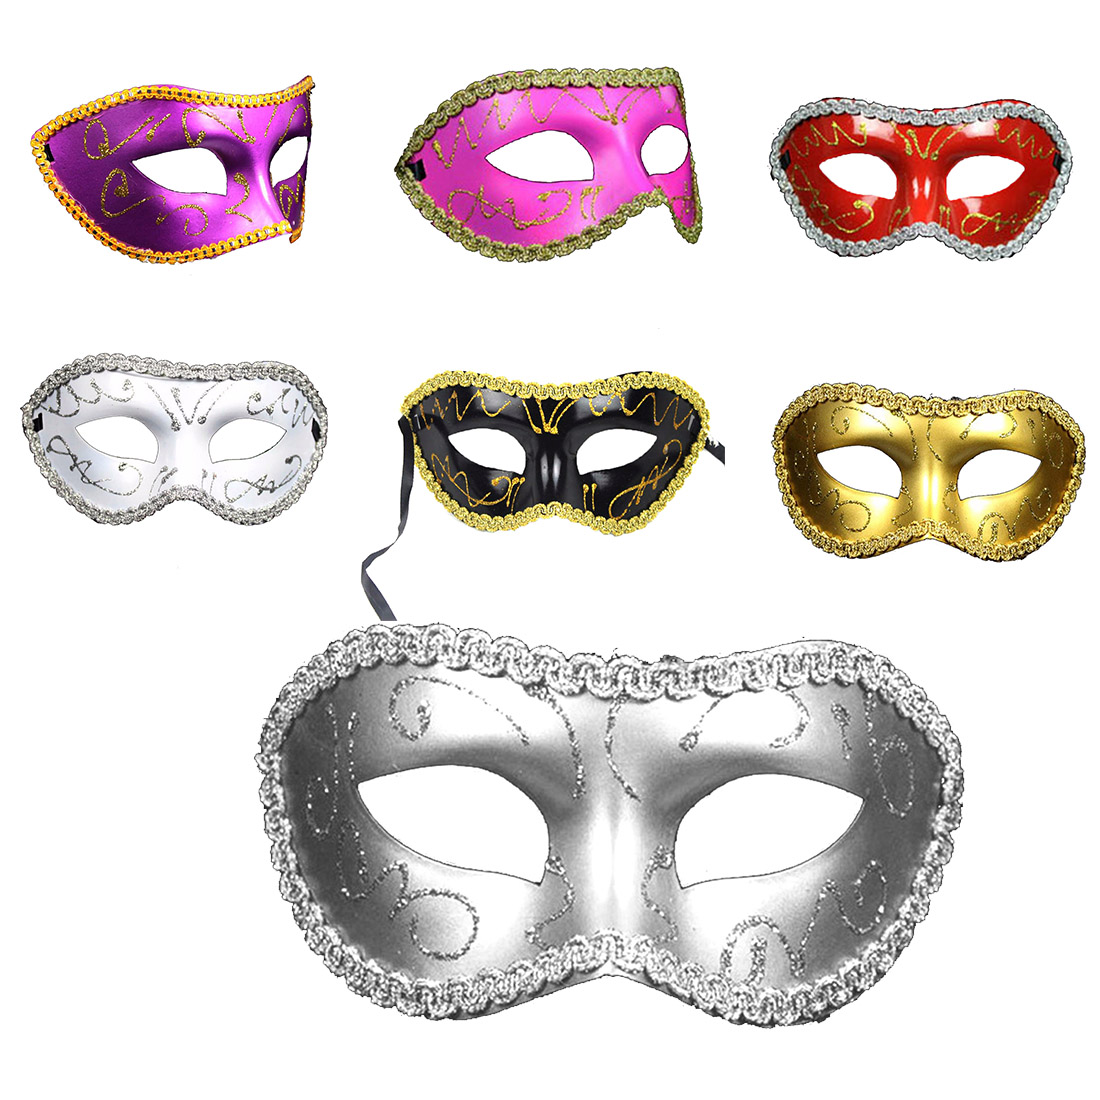 Masquerade <font><b>Sexy</b></font> Men Women Costume Prom <font><b>Mask</b></font> Venetian Mardi Gras Party Dance Ball <font><b>Halloween</b></font> Carnaval <font><b>Mask</b></font> Fancy Dress Costume image